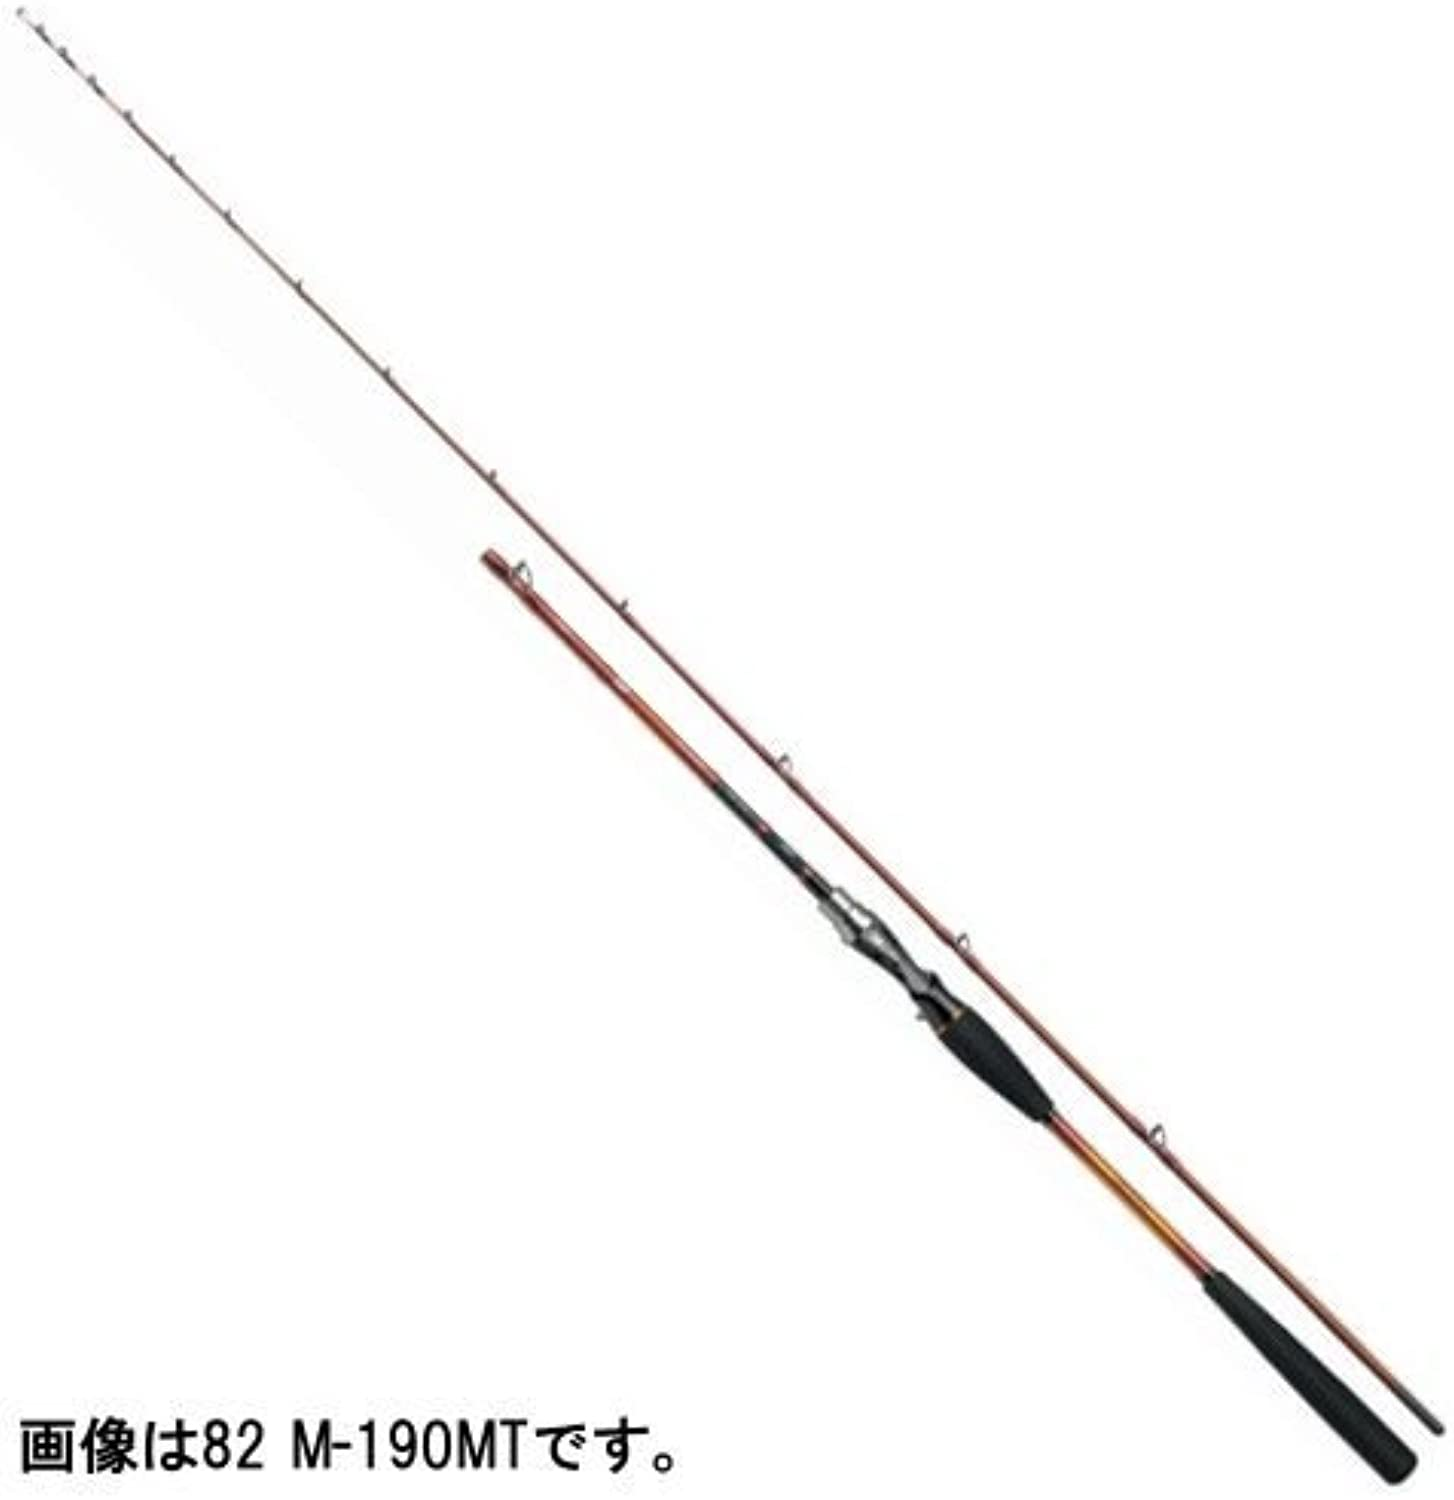 Daiwa (Daiwa) Funesao Bait Leading 82 M-160Mt Fishing Rod Jp F S